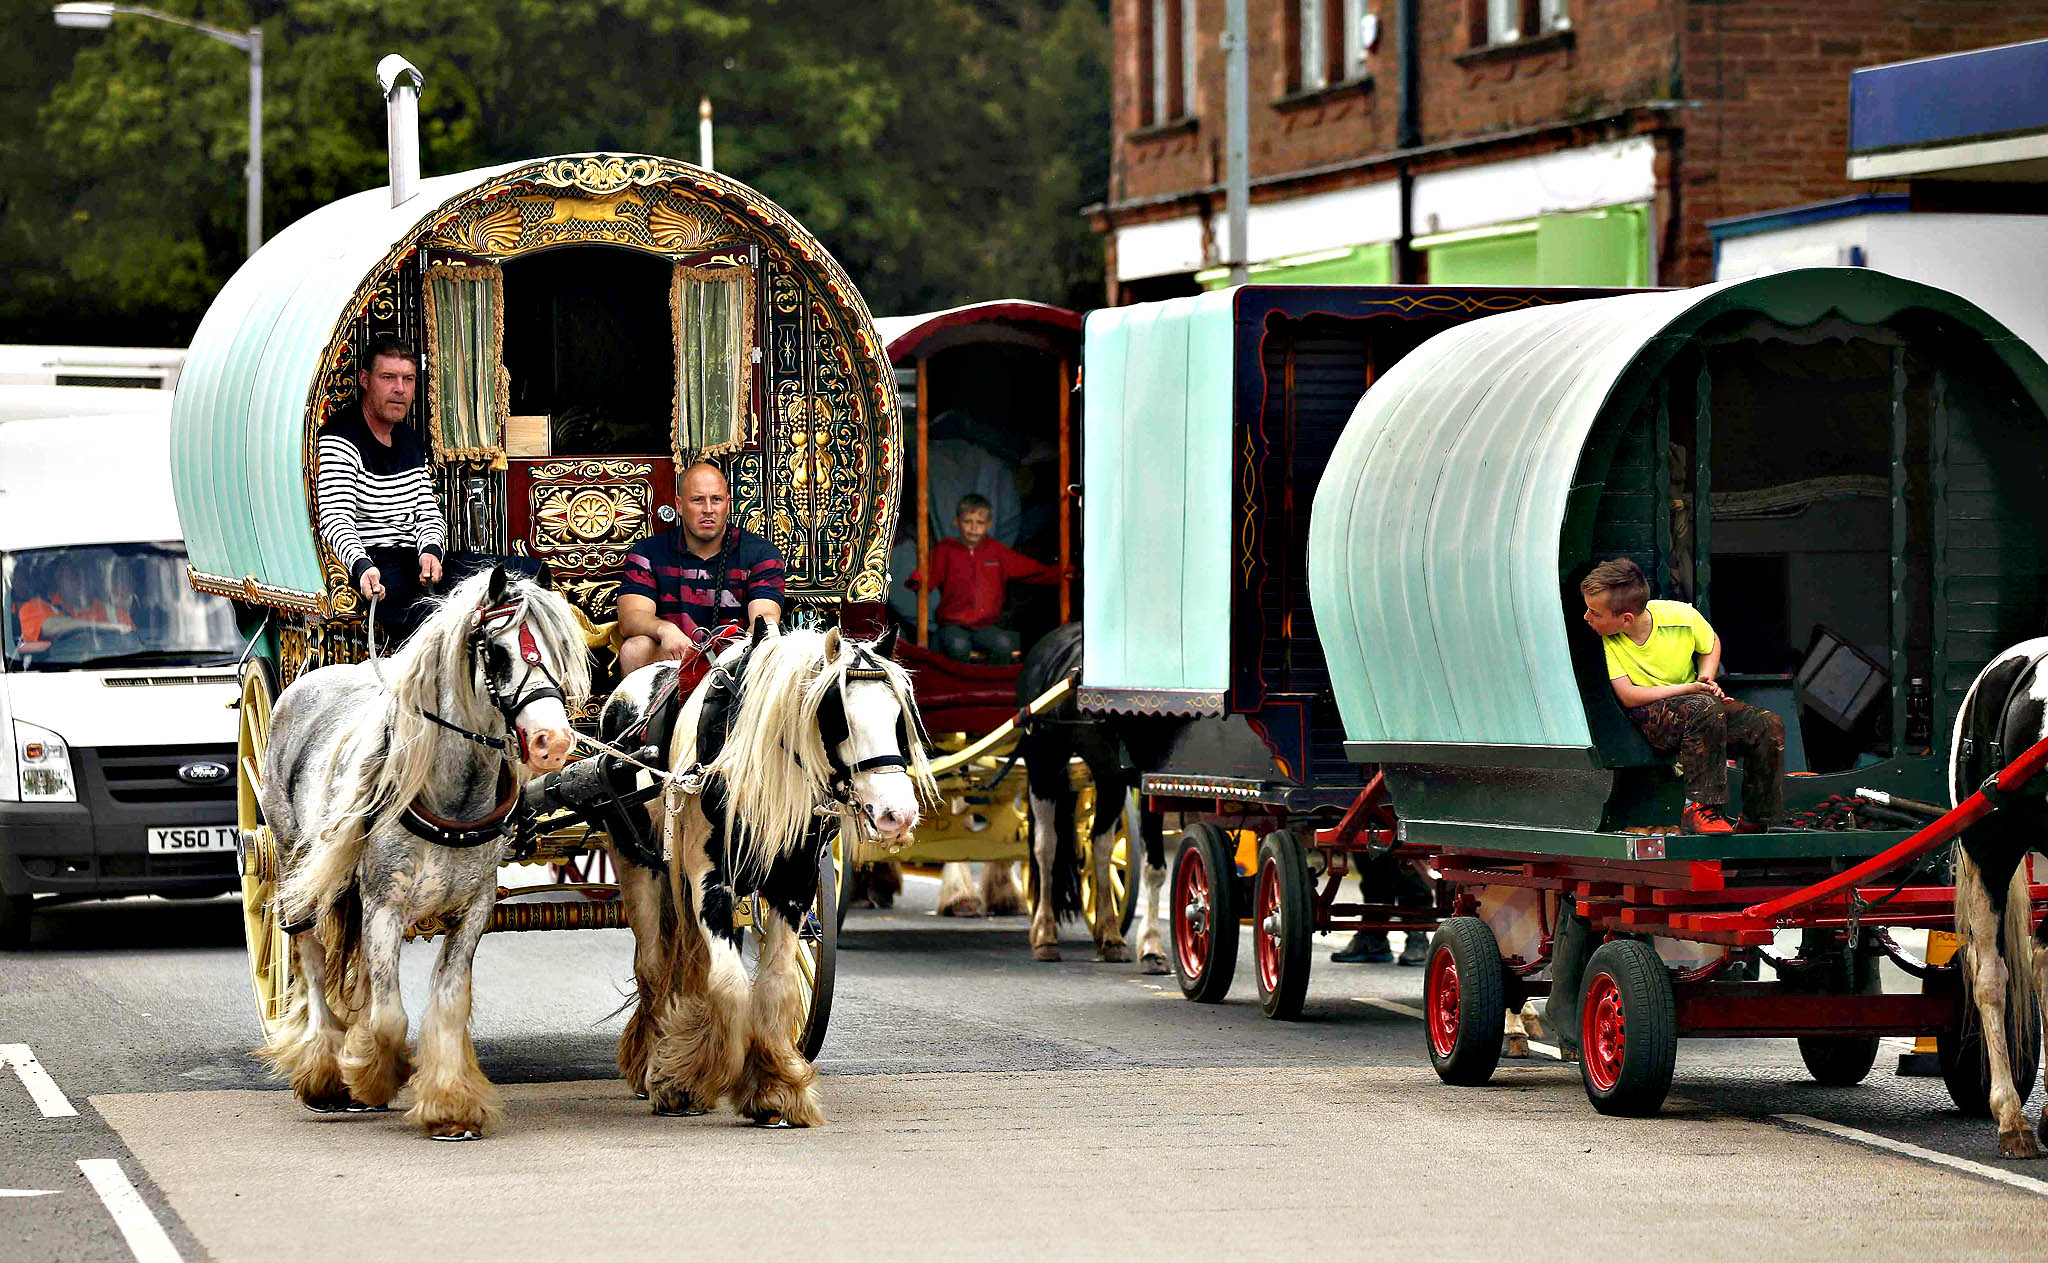 Travellers drive their traditional Romany caravans along the main road in Appleby in Westmorland, Britain June 4, 2015. The caravans form part of the annual horse fair which has taken place since the 1600's